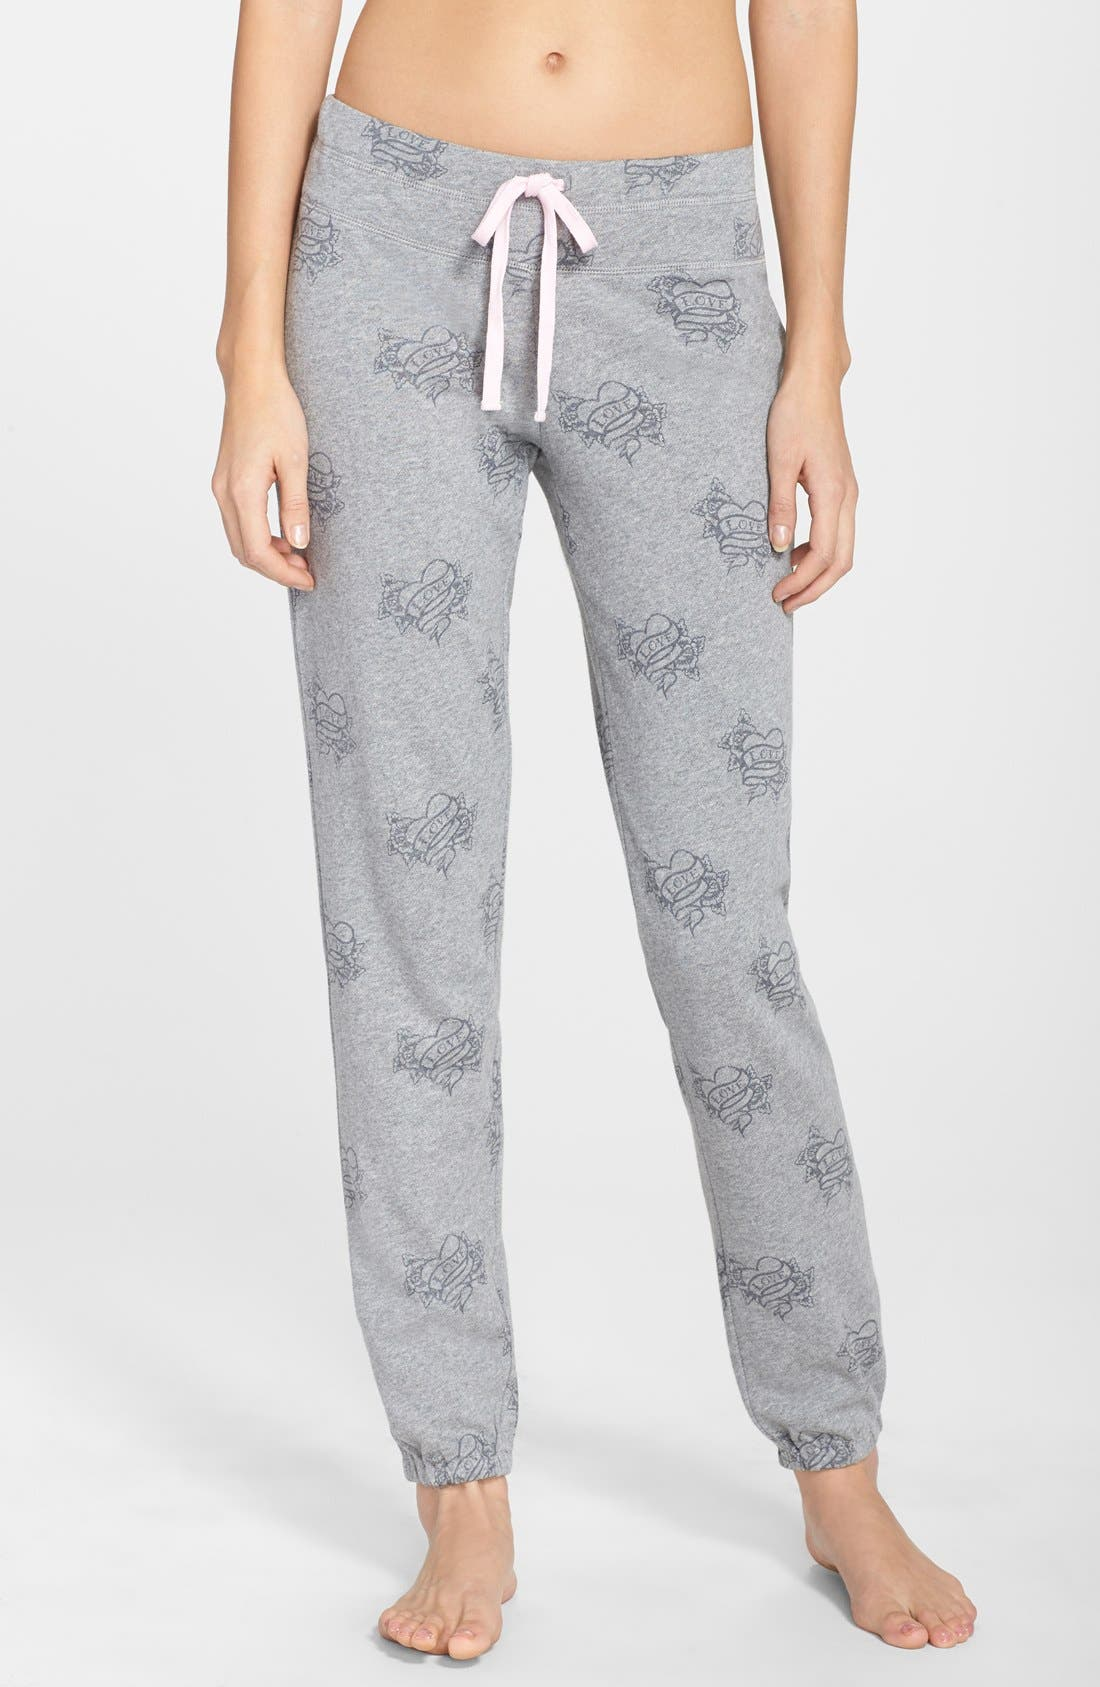 Alternate Image 1 Selected - PJ Salvage 'Love More' Tattoo Print Sweatpants